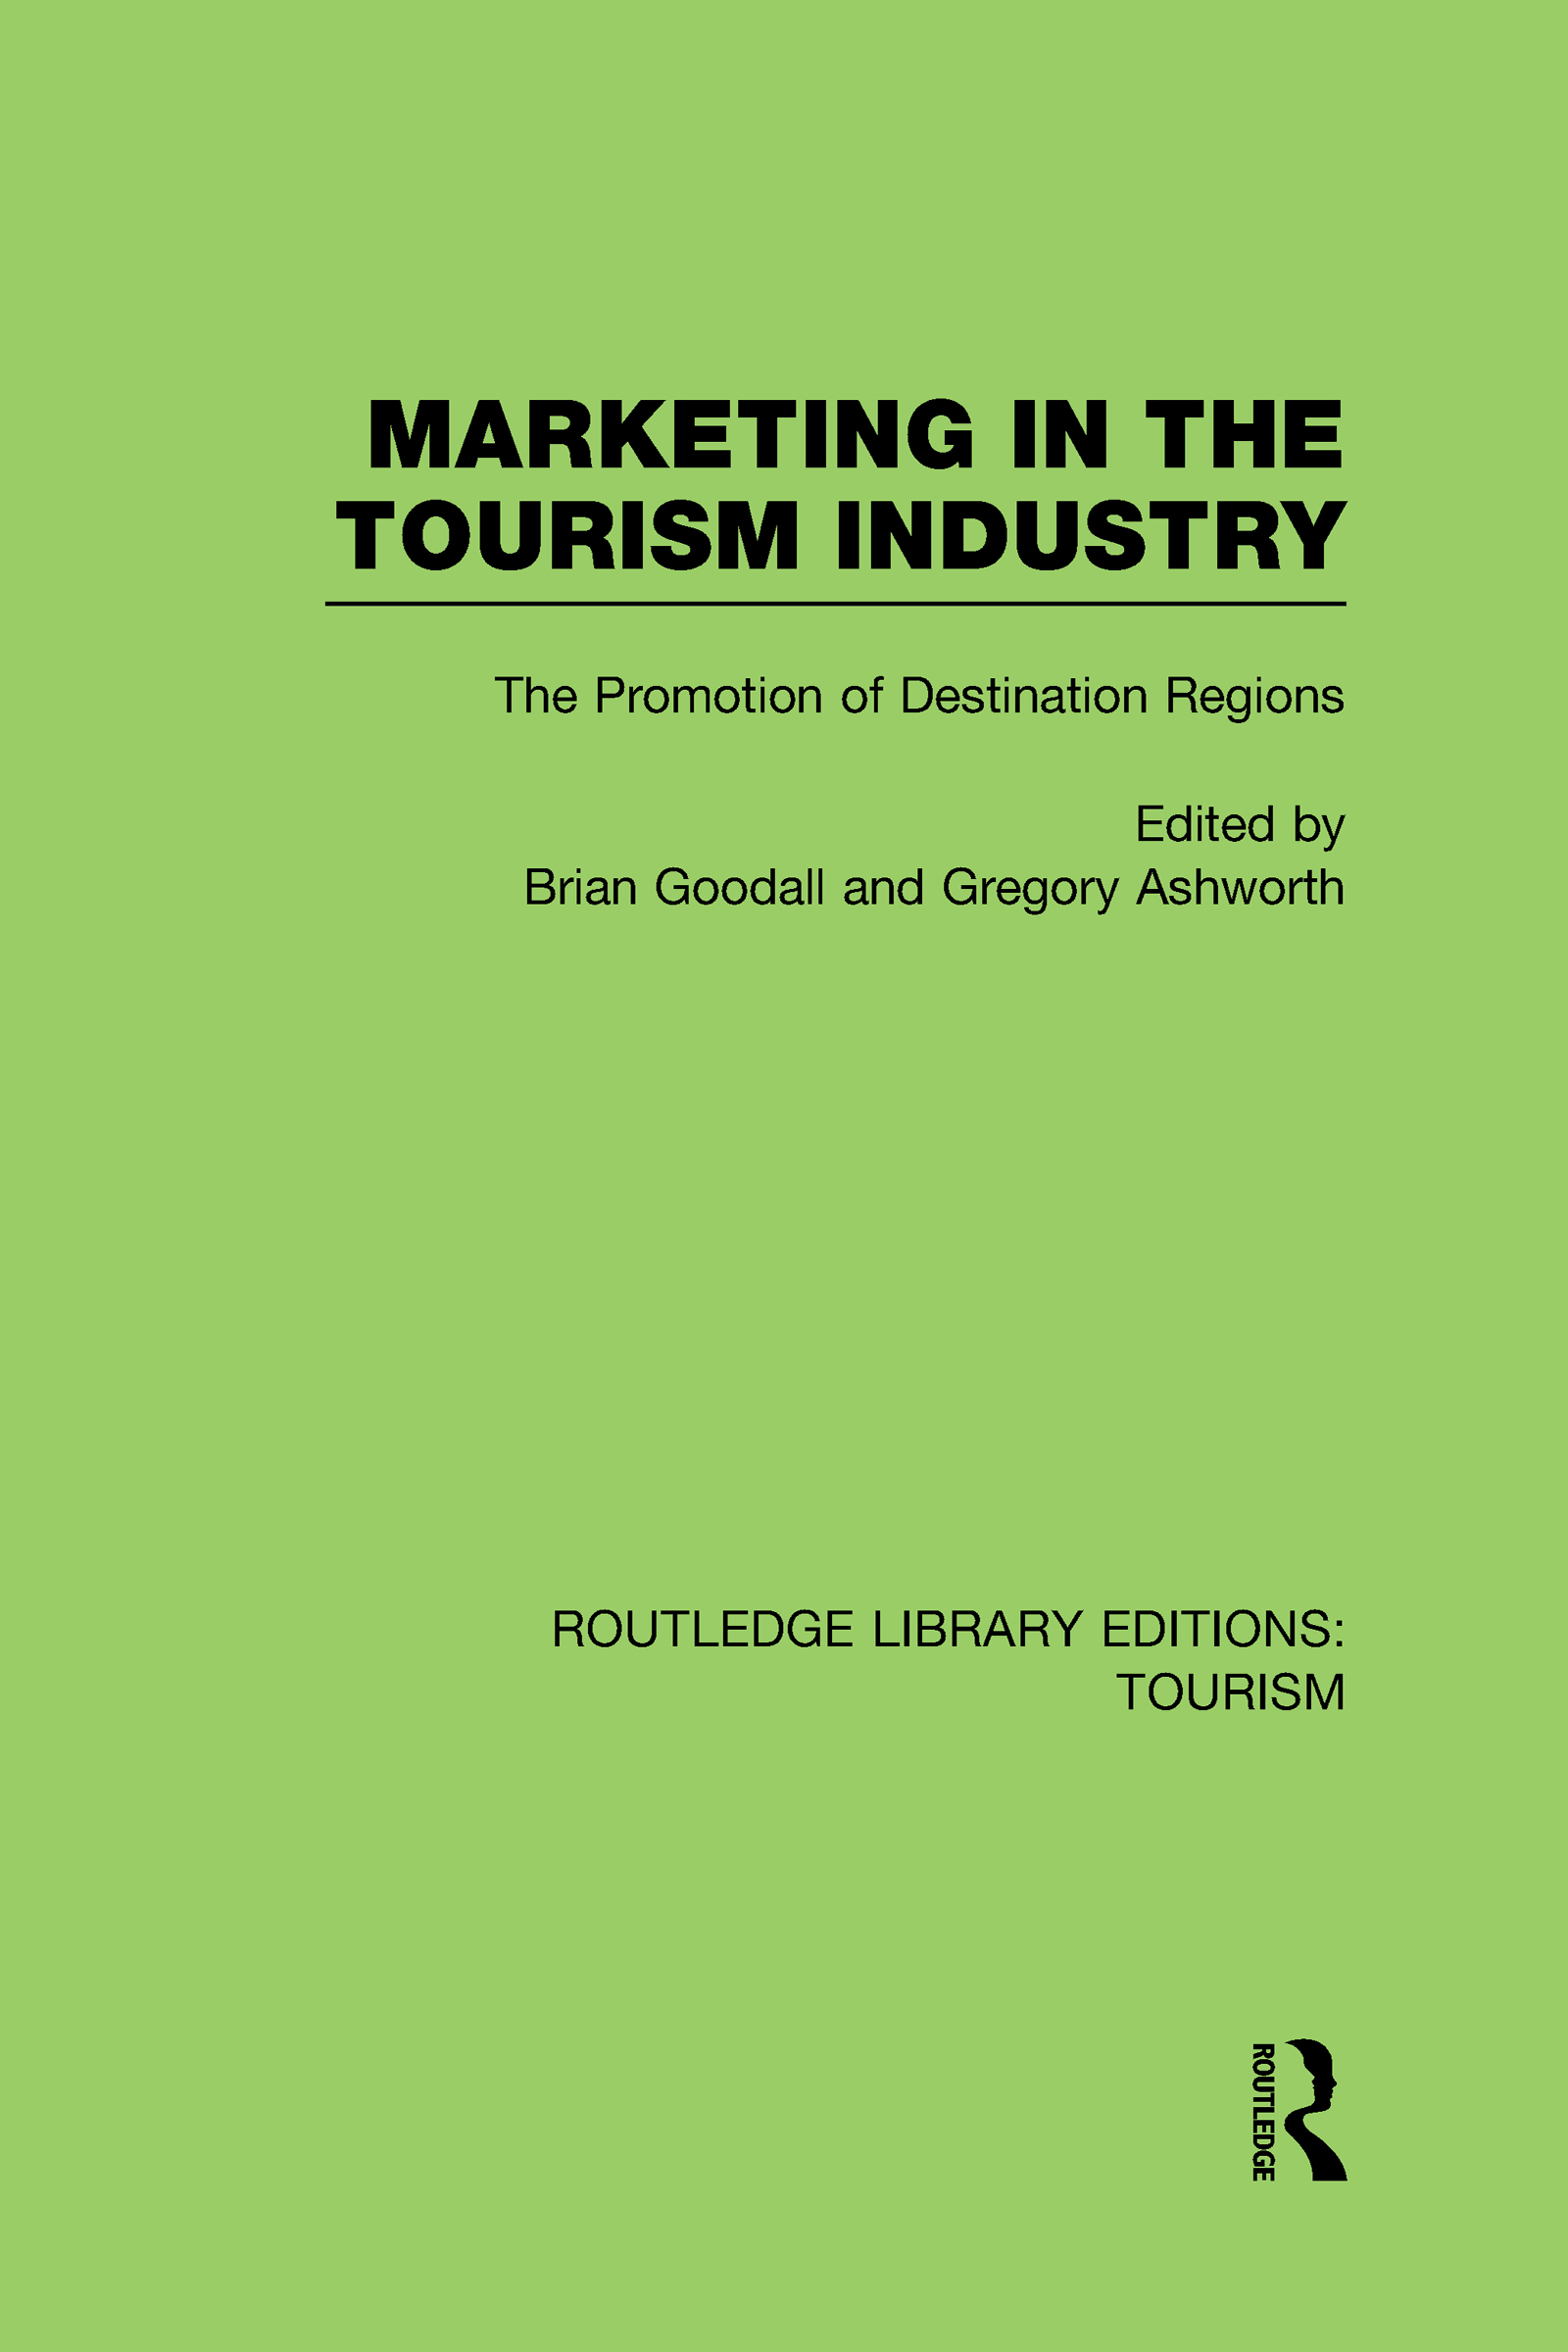 Marketing in the Tourism Industry (RLE Tourism): The Promotion of Destination Regions (Hardback) book cover